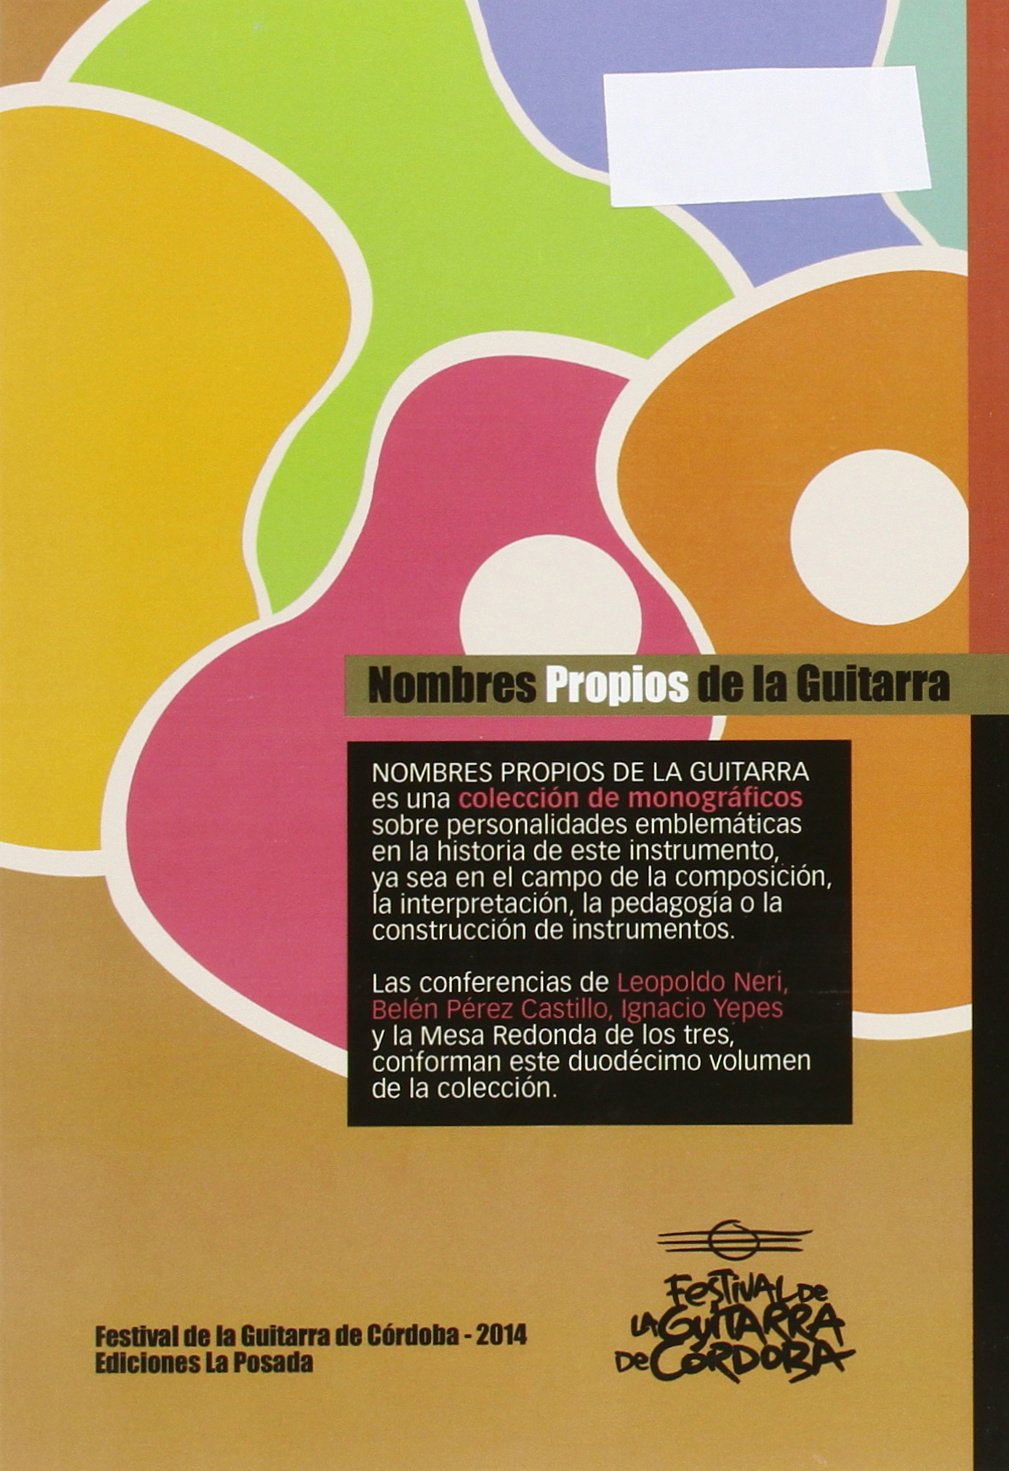 Narciso Yepes: 12 (Nombres Propios de la Guitarra): Amazon.es ...